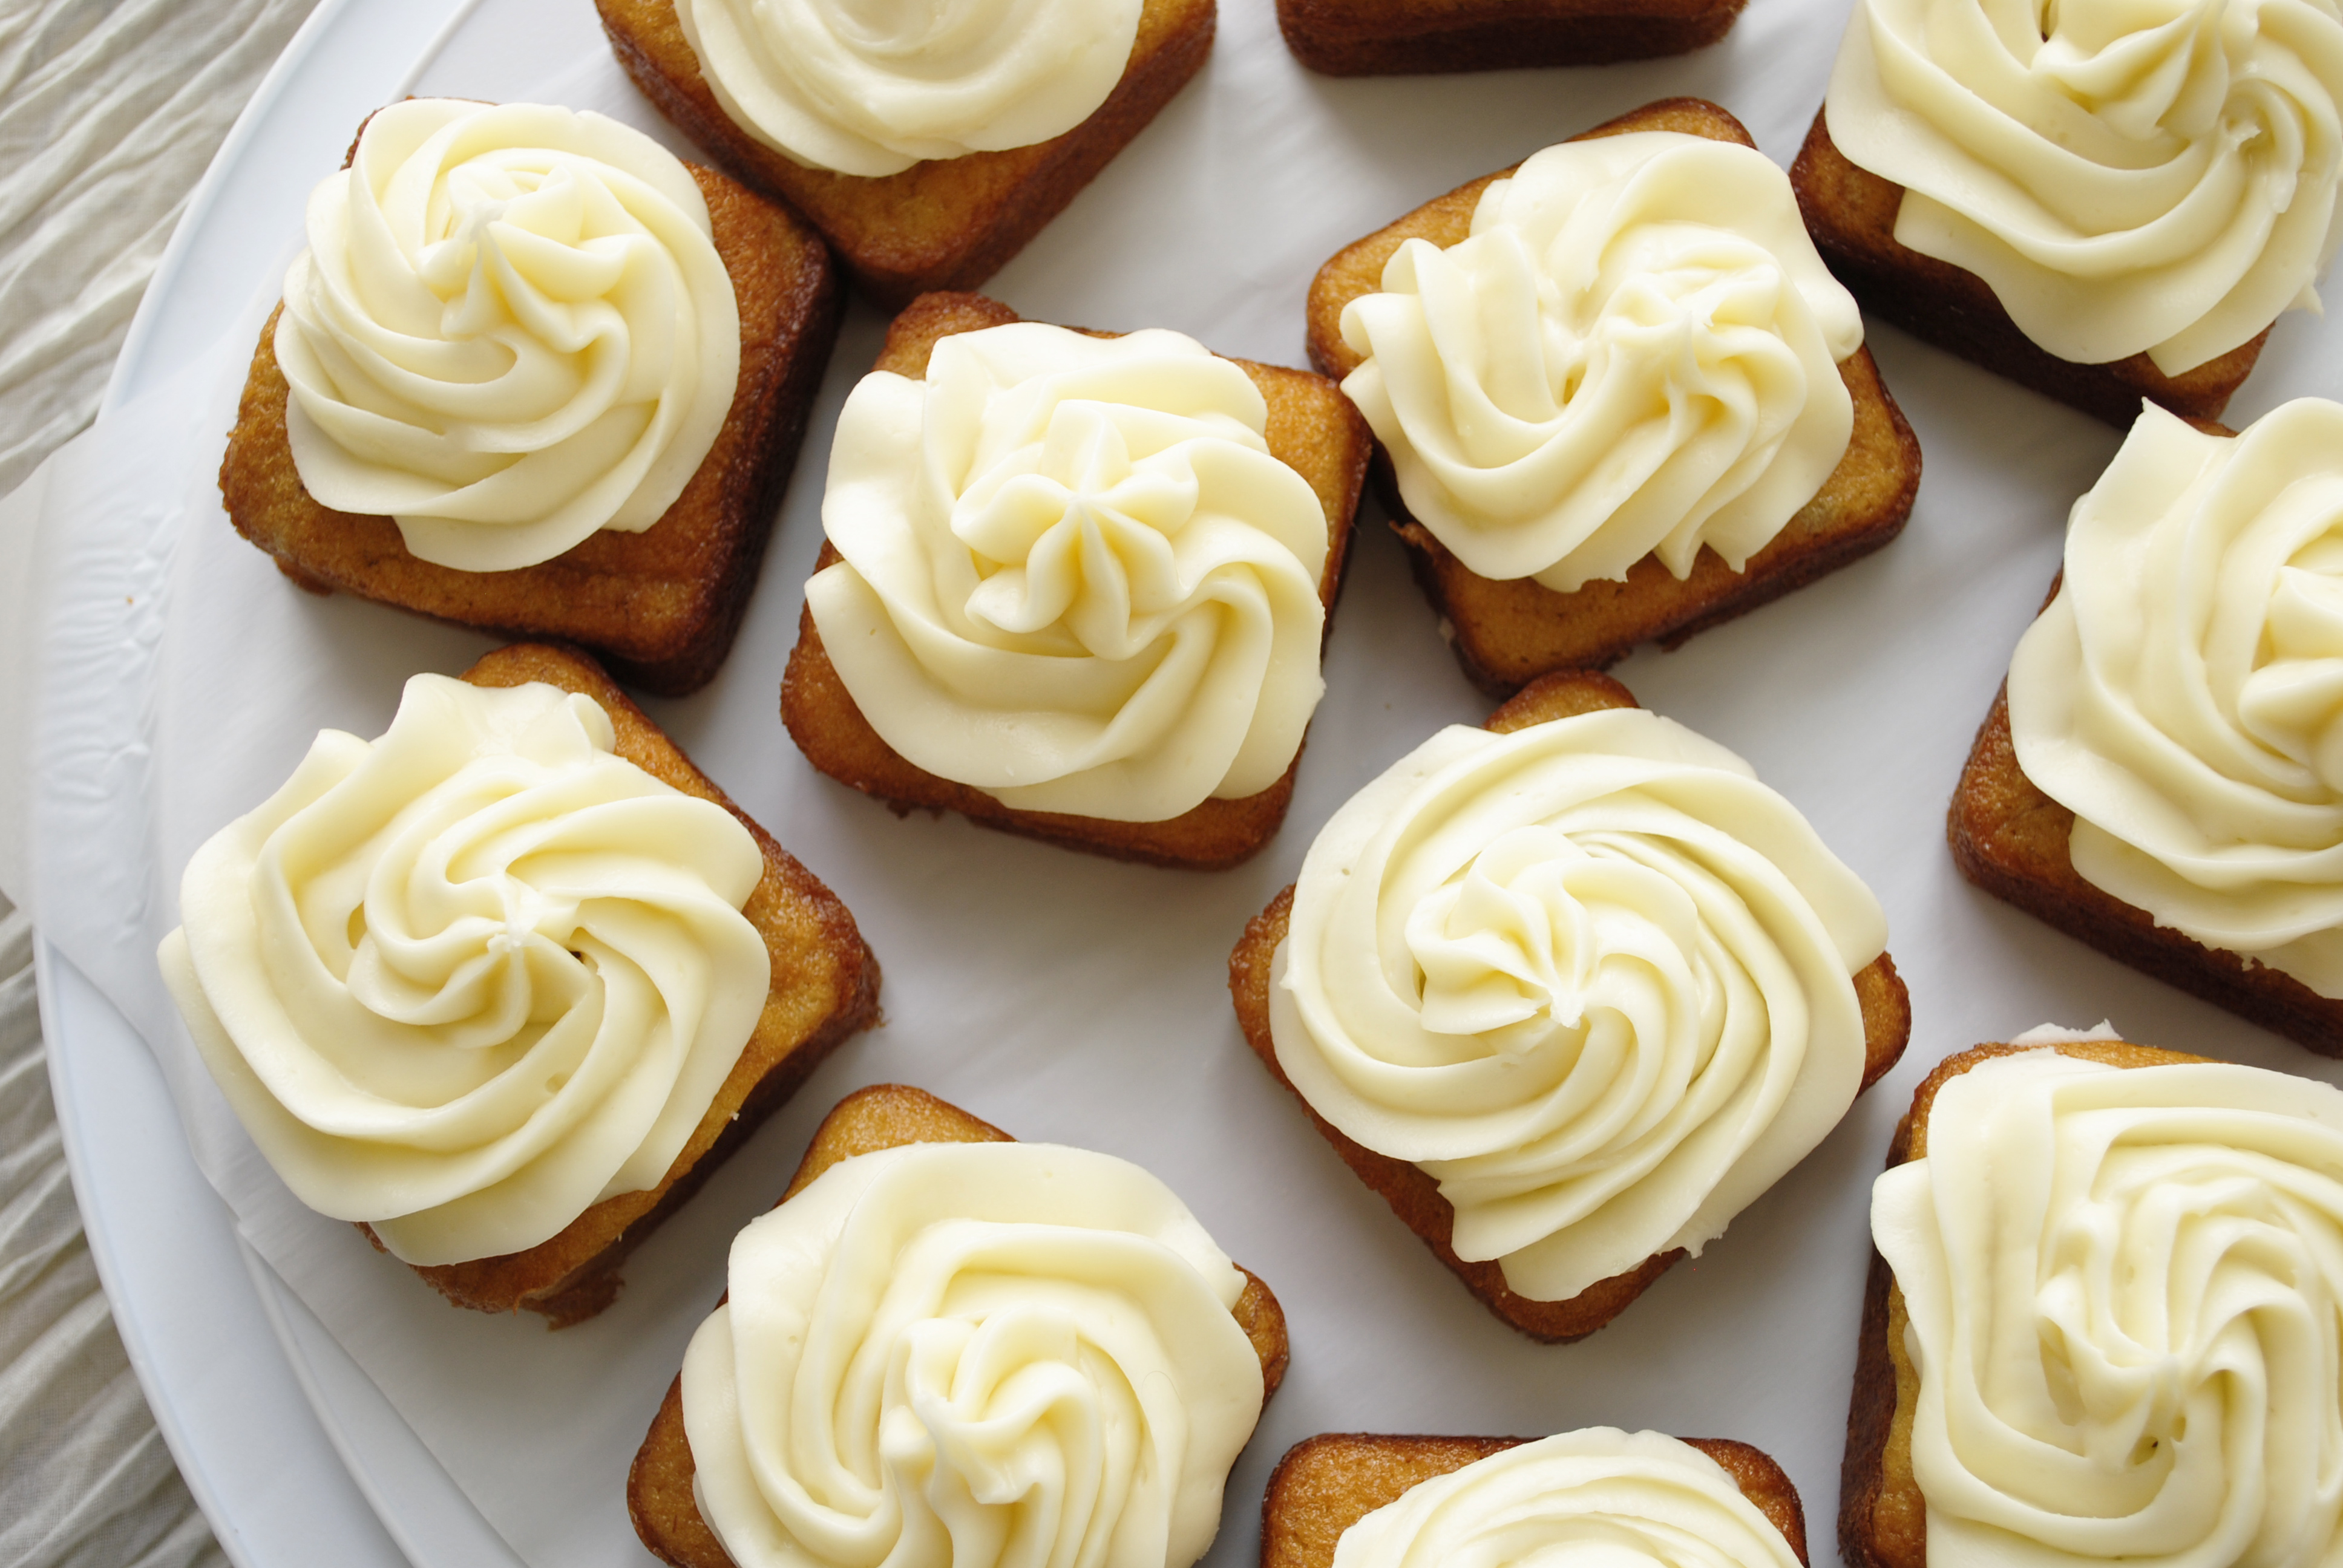 Mini Banana Cakes with Cream Cheese Frosting